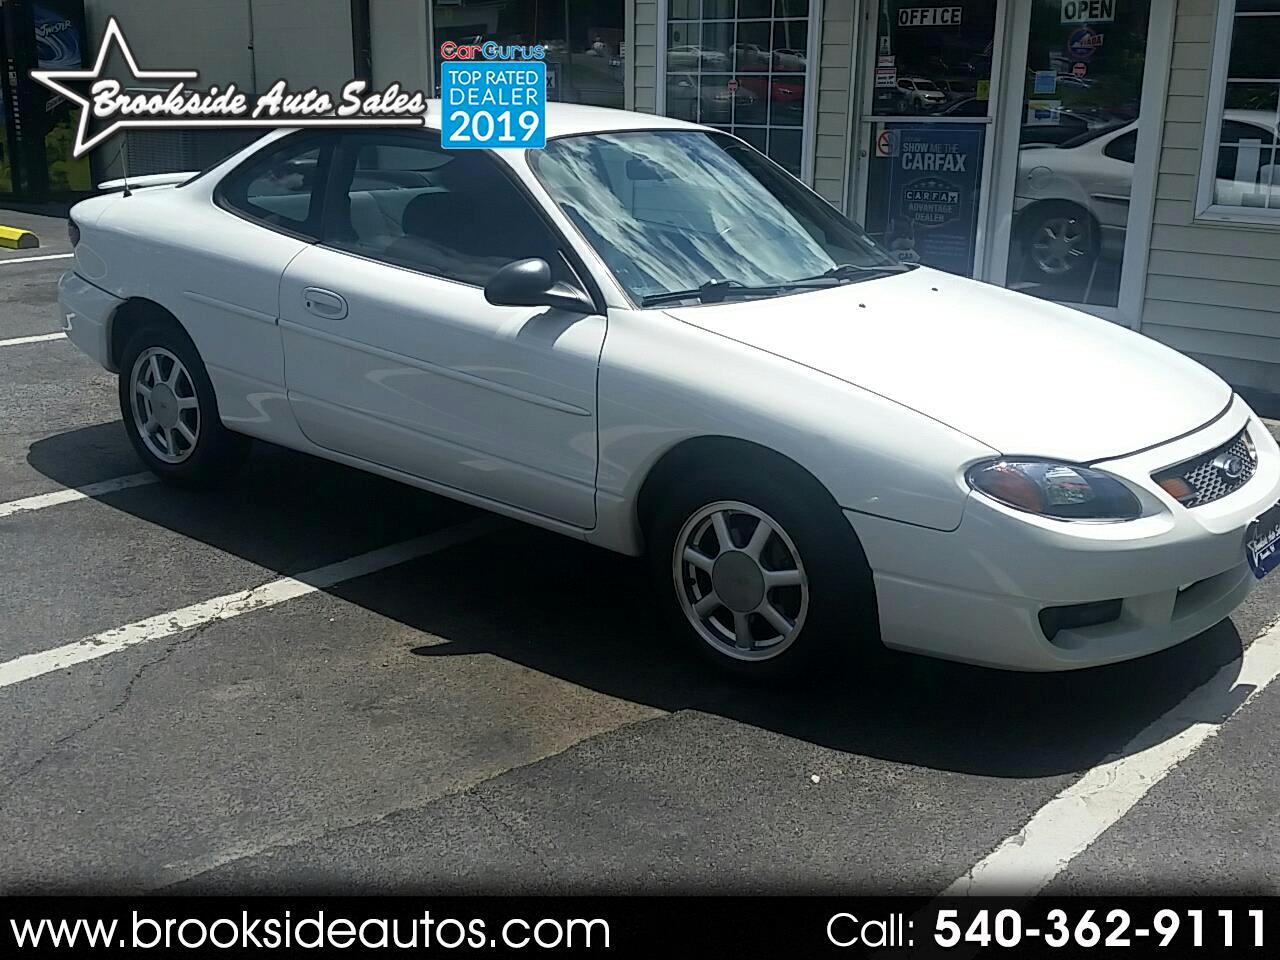 2003 Ford ZX2 2dr Cpe ZX2 Deluxe